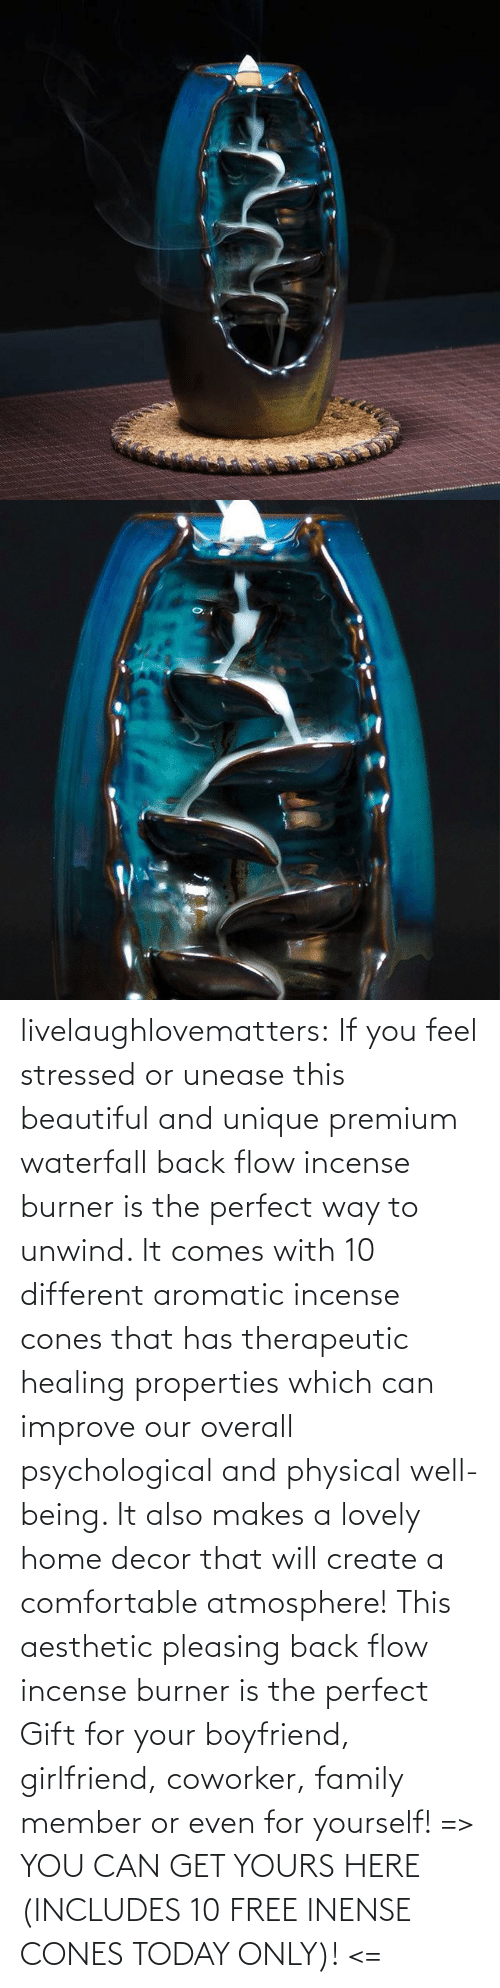 create a: livelaughlovematters: If you feel stressed or unease this beautiful and unique premium waterfall back flow incense burner is the perfect way to unwind. It comes with 10 different aromatic incense cones that has therapeutic healing properties which can improve our overall psychological and physical well-being. It also makes a lovely home decor that will create a comfortable atmosphere! This aesthetic pleasing back flow incense burner is the perfect Gift for your boyfriend, girlfriend, coworker, family member or even for yourself! => YOU CAN GET YOURS HERE (INCLUDES 10 FREE INENSE CONES TODAY ONLY)! <=